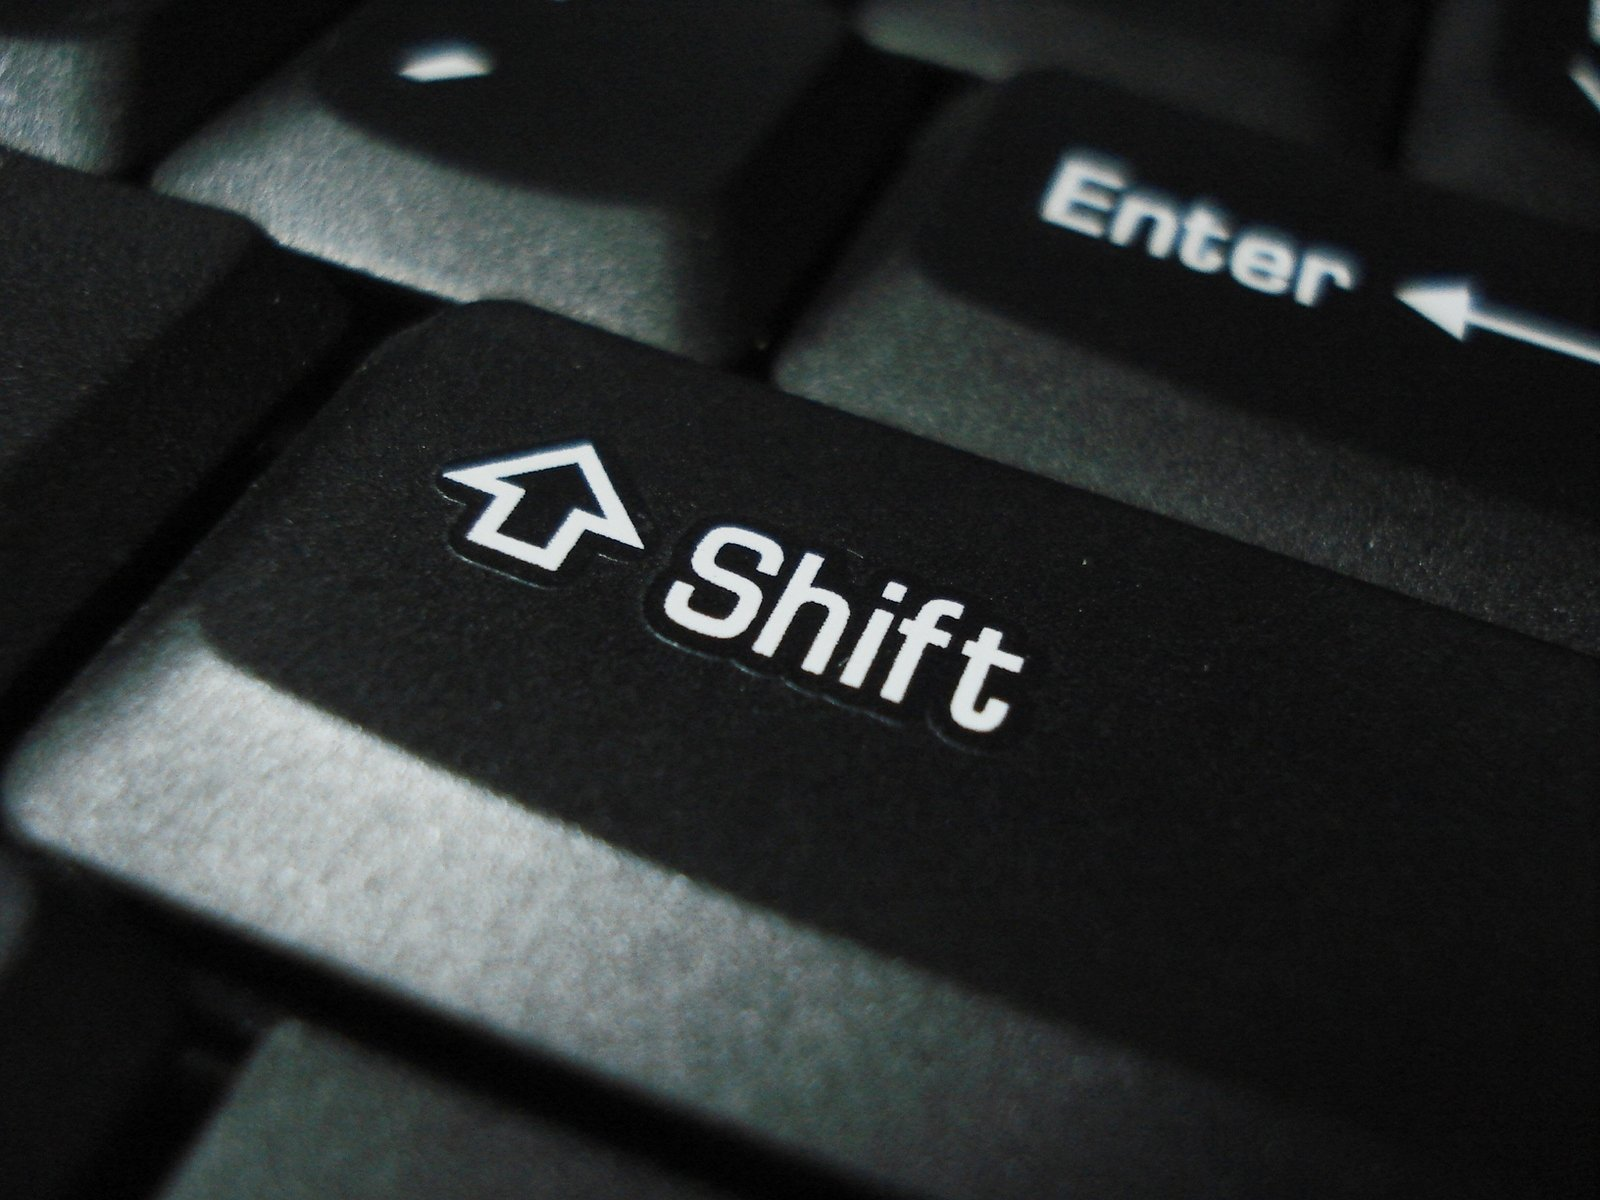 Shift on keyboard